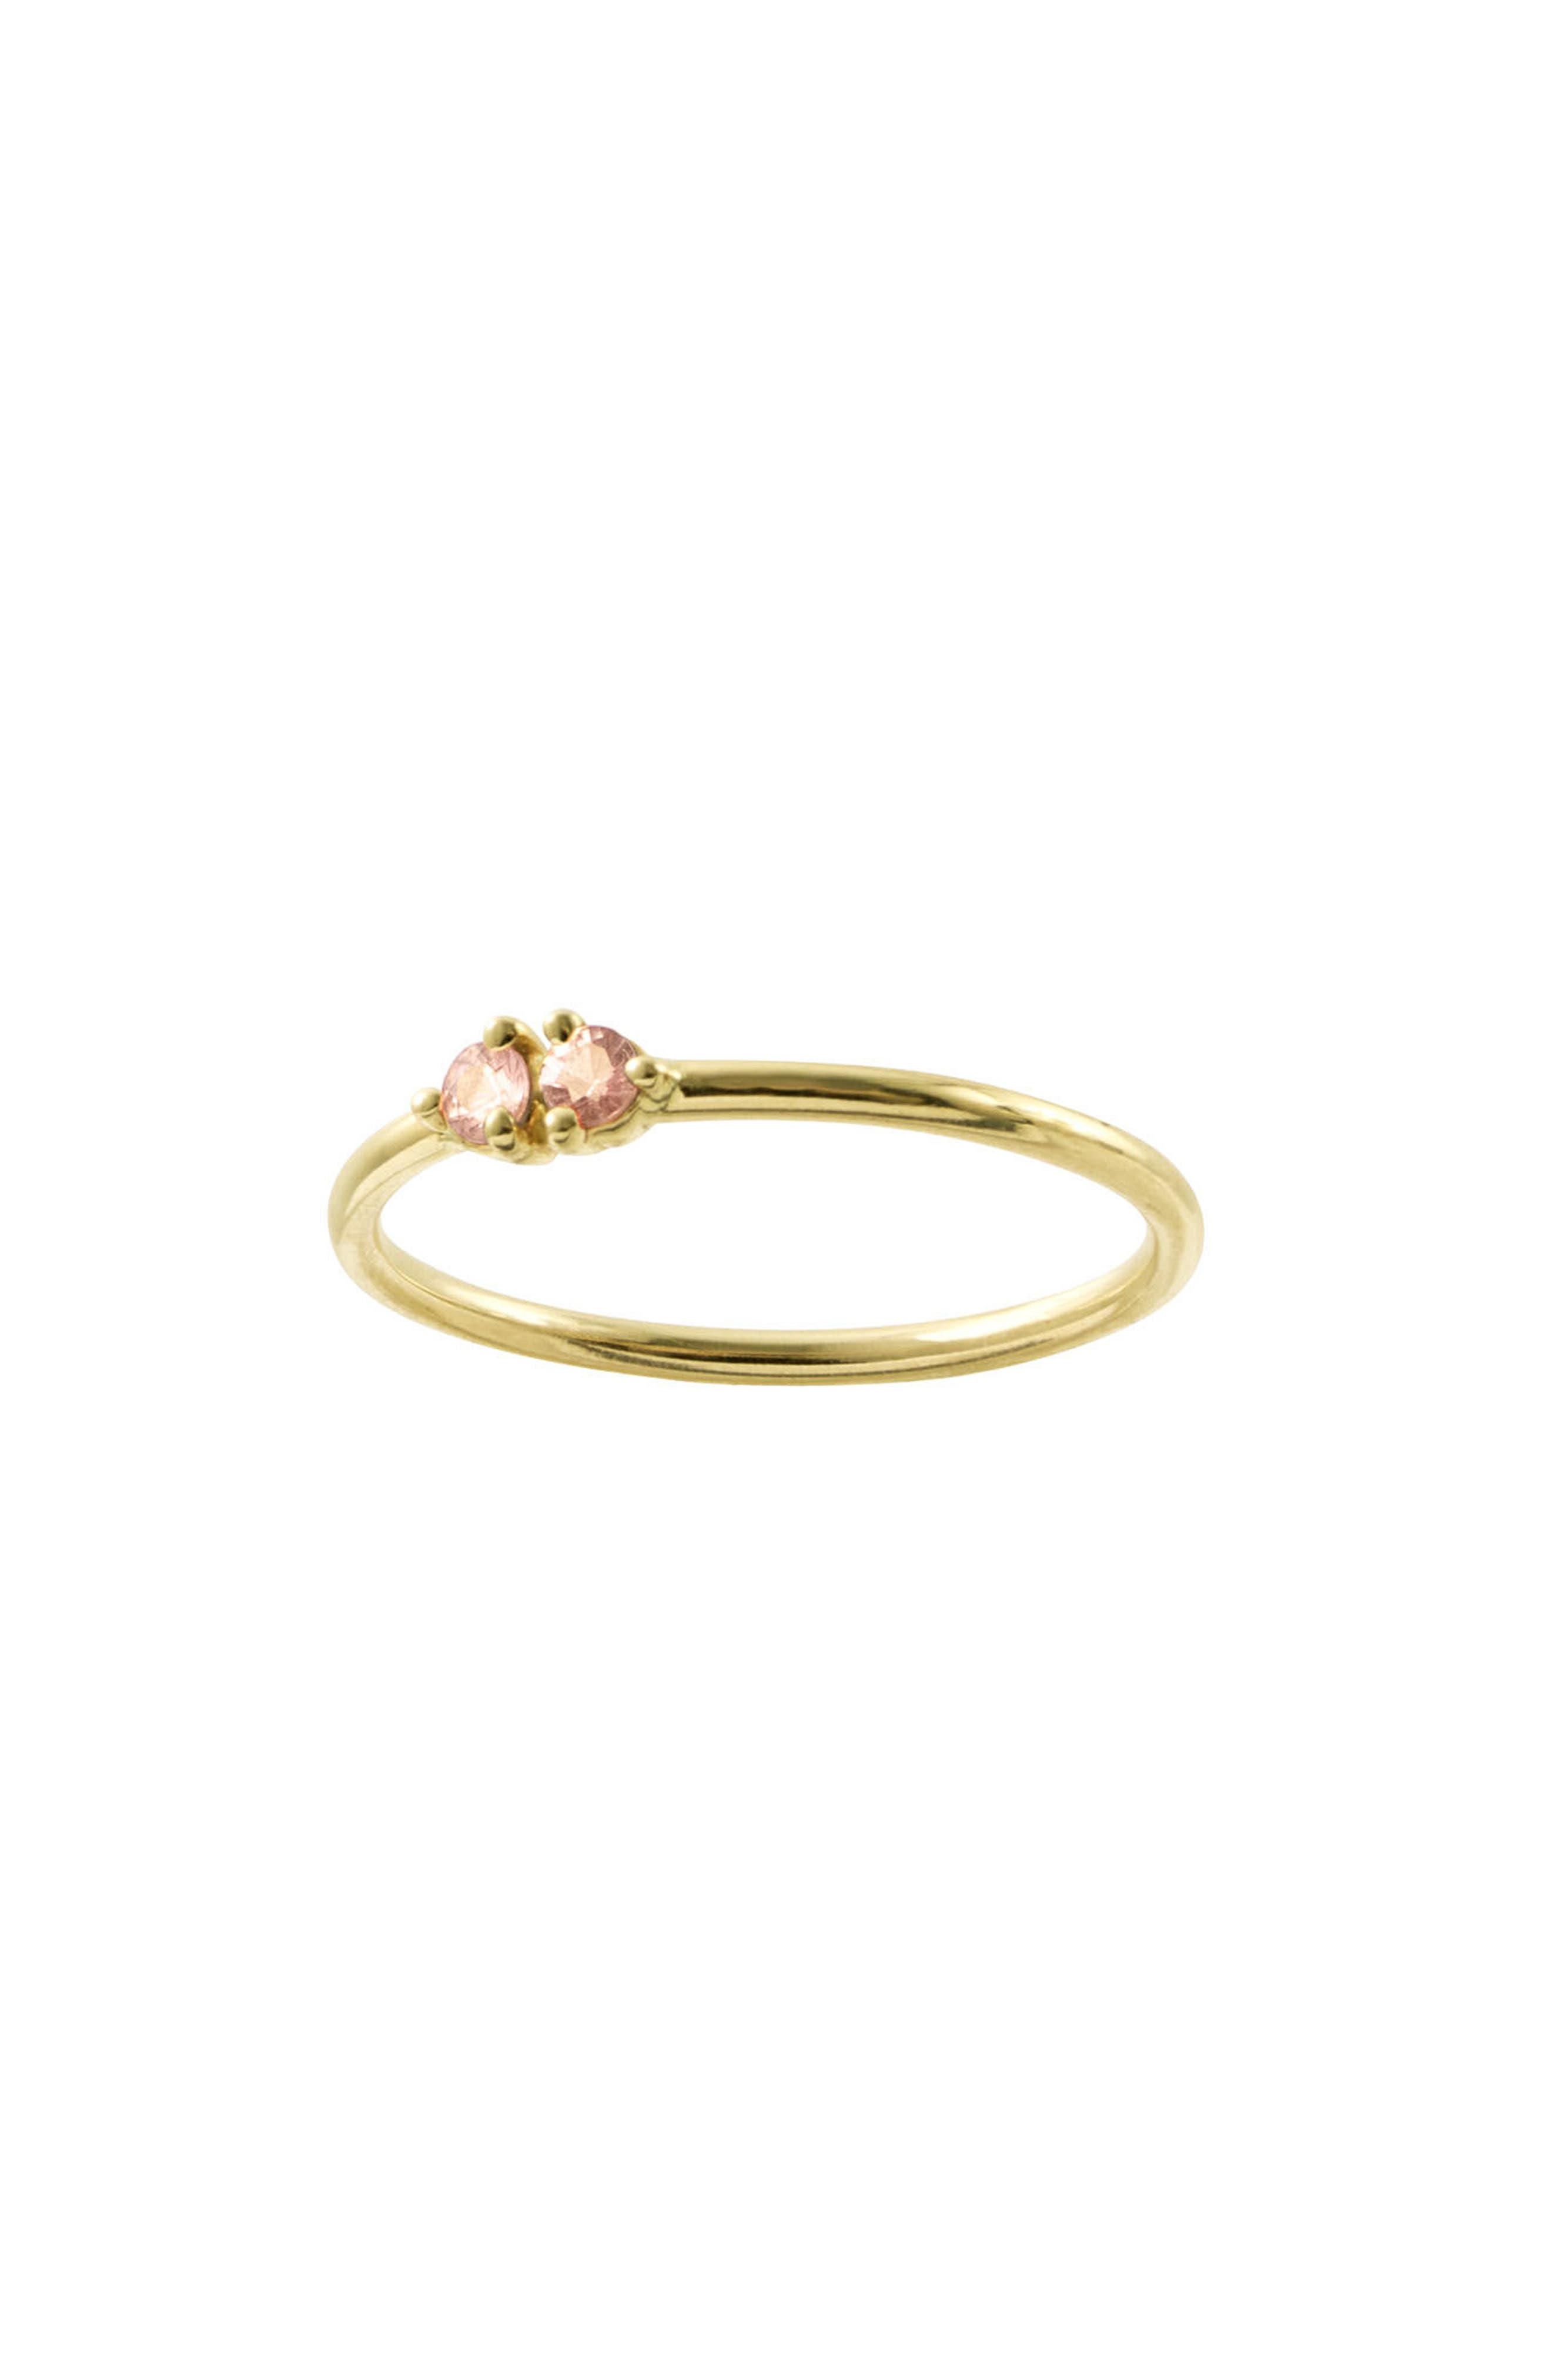 Double Stone Ring,                             Alternate thumbnail 2, color,                             PINK TOURMALINE